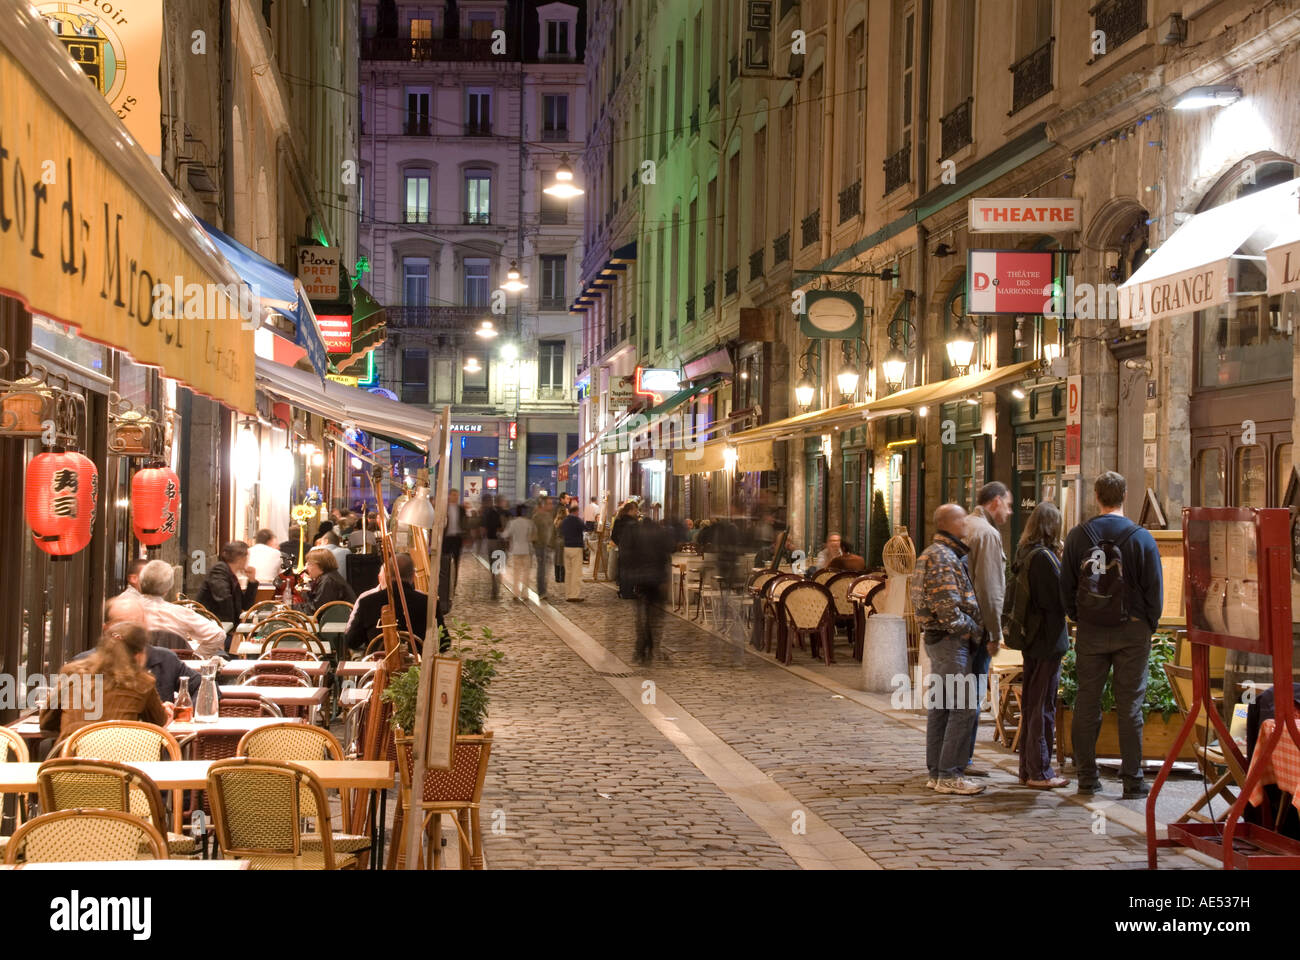 restaurants on rue des marronniers lyon rhone france europe stock photo royalty free image. Black Bedroom Furniture Sets. Home Design Ideas